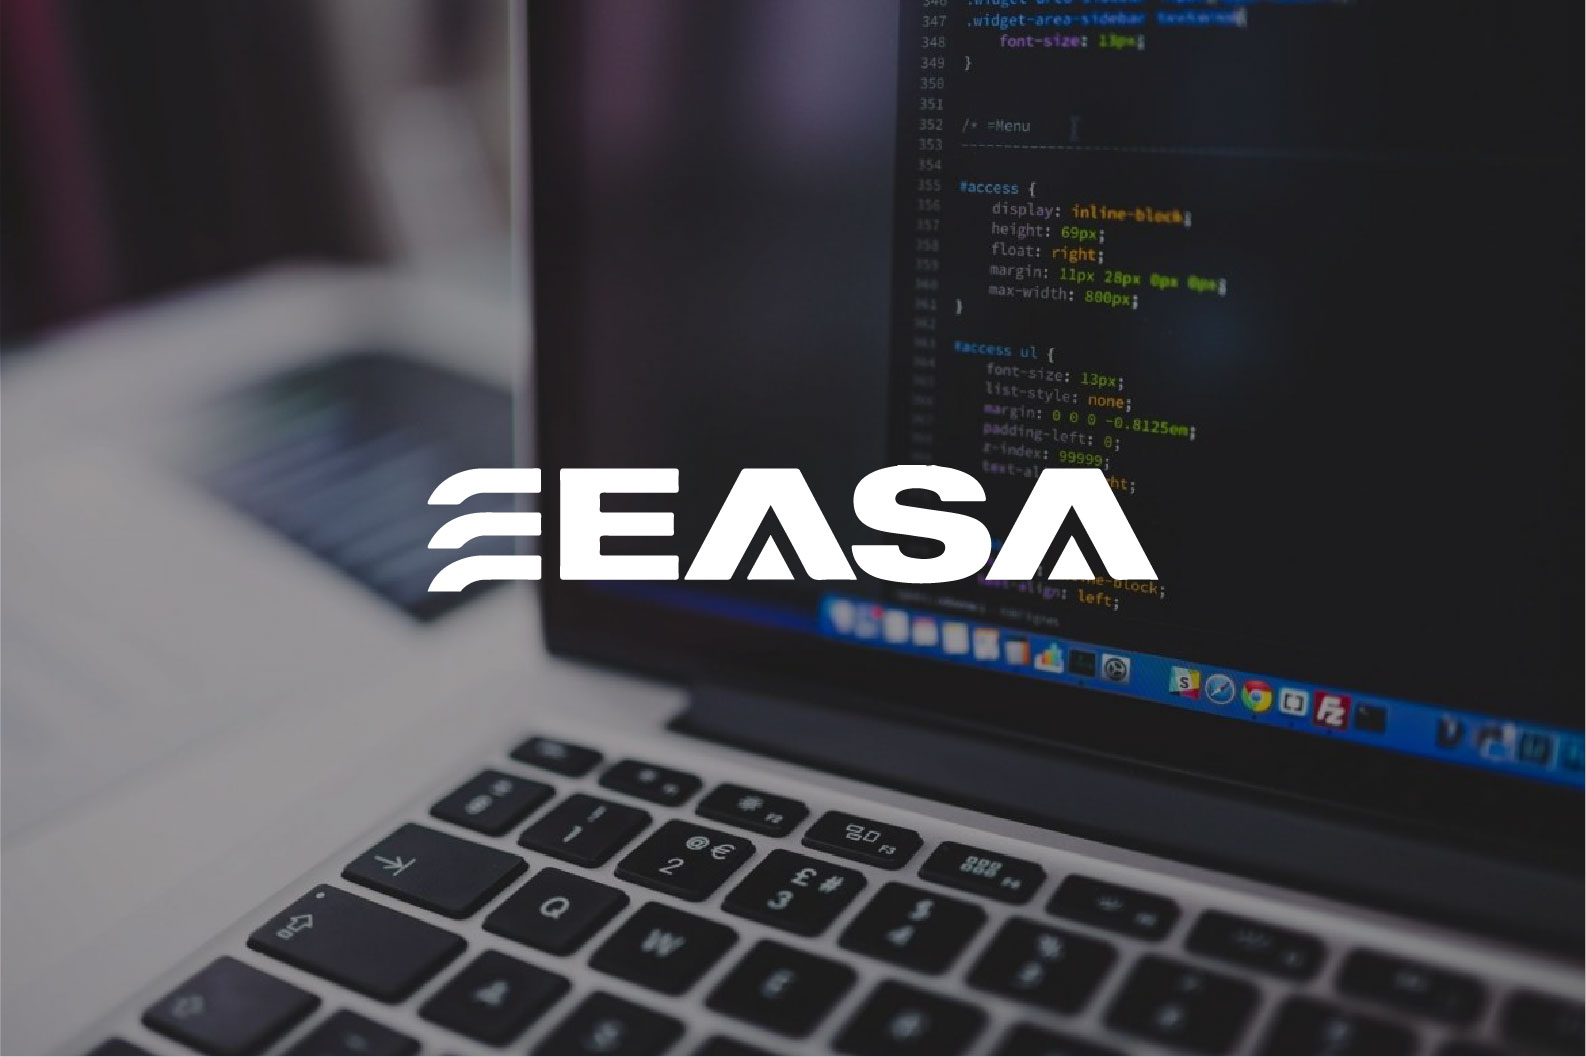 EASA Software